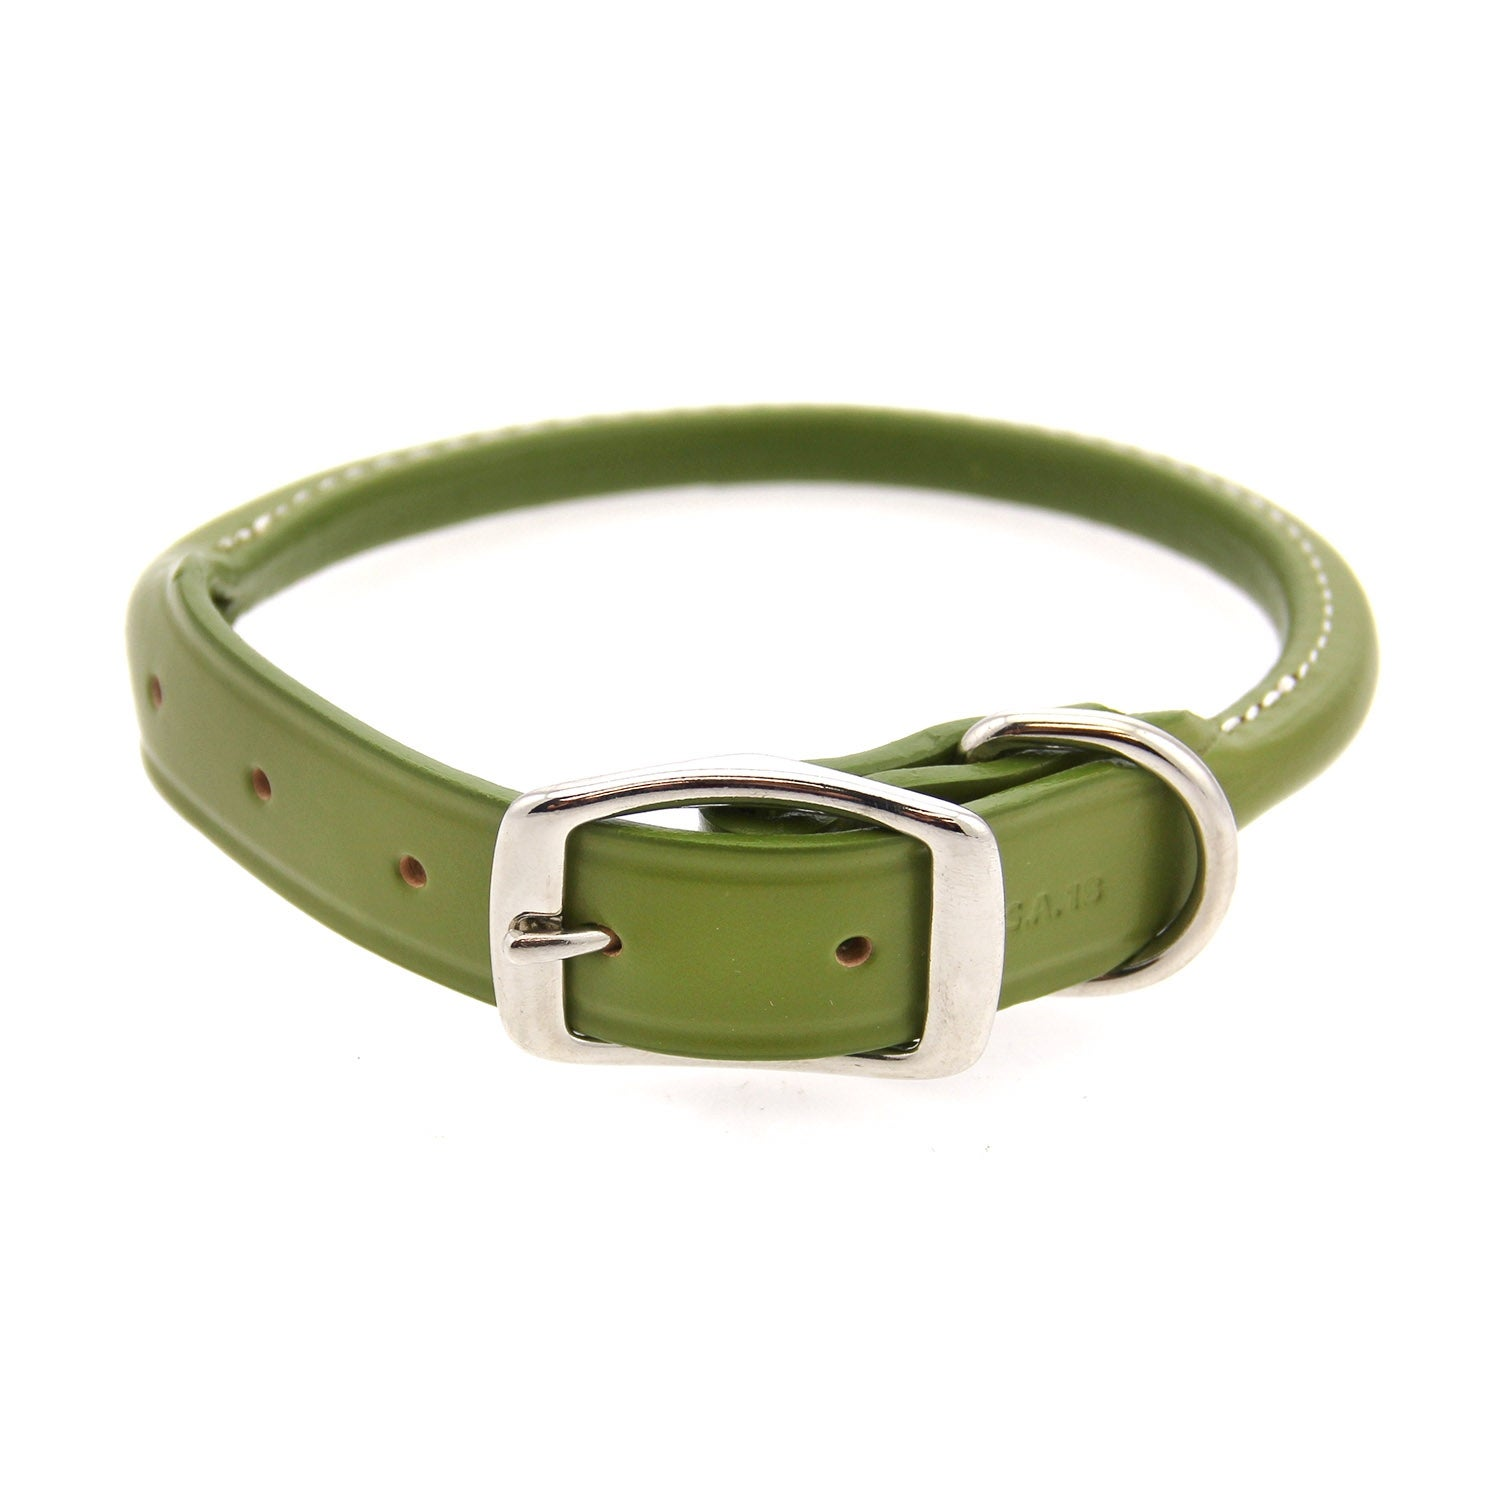 Round Leather Dog Collar by Auburn Leather (Green - 5/8 Width x 16 Length)